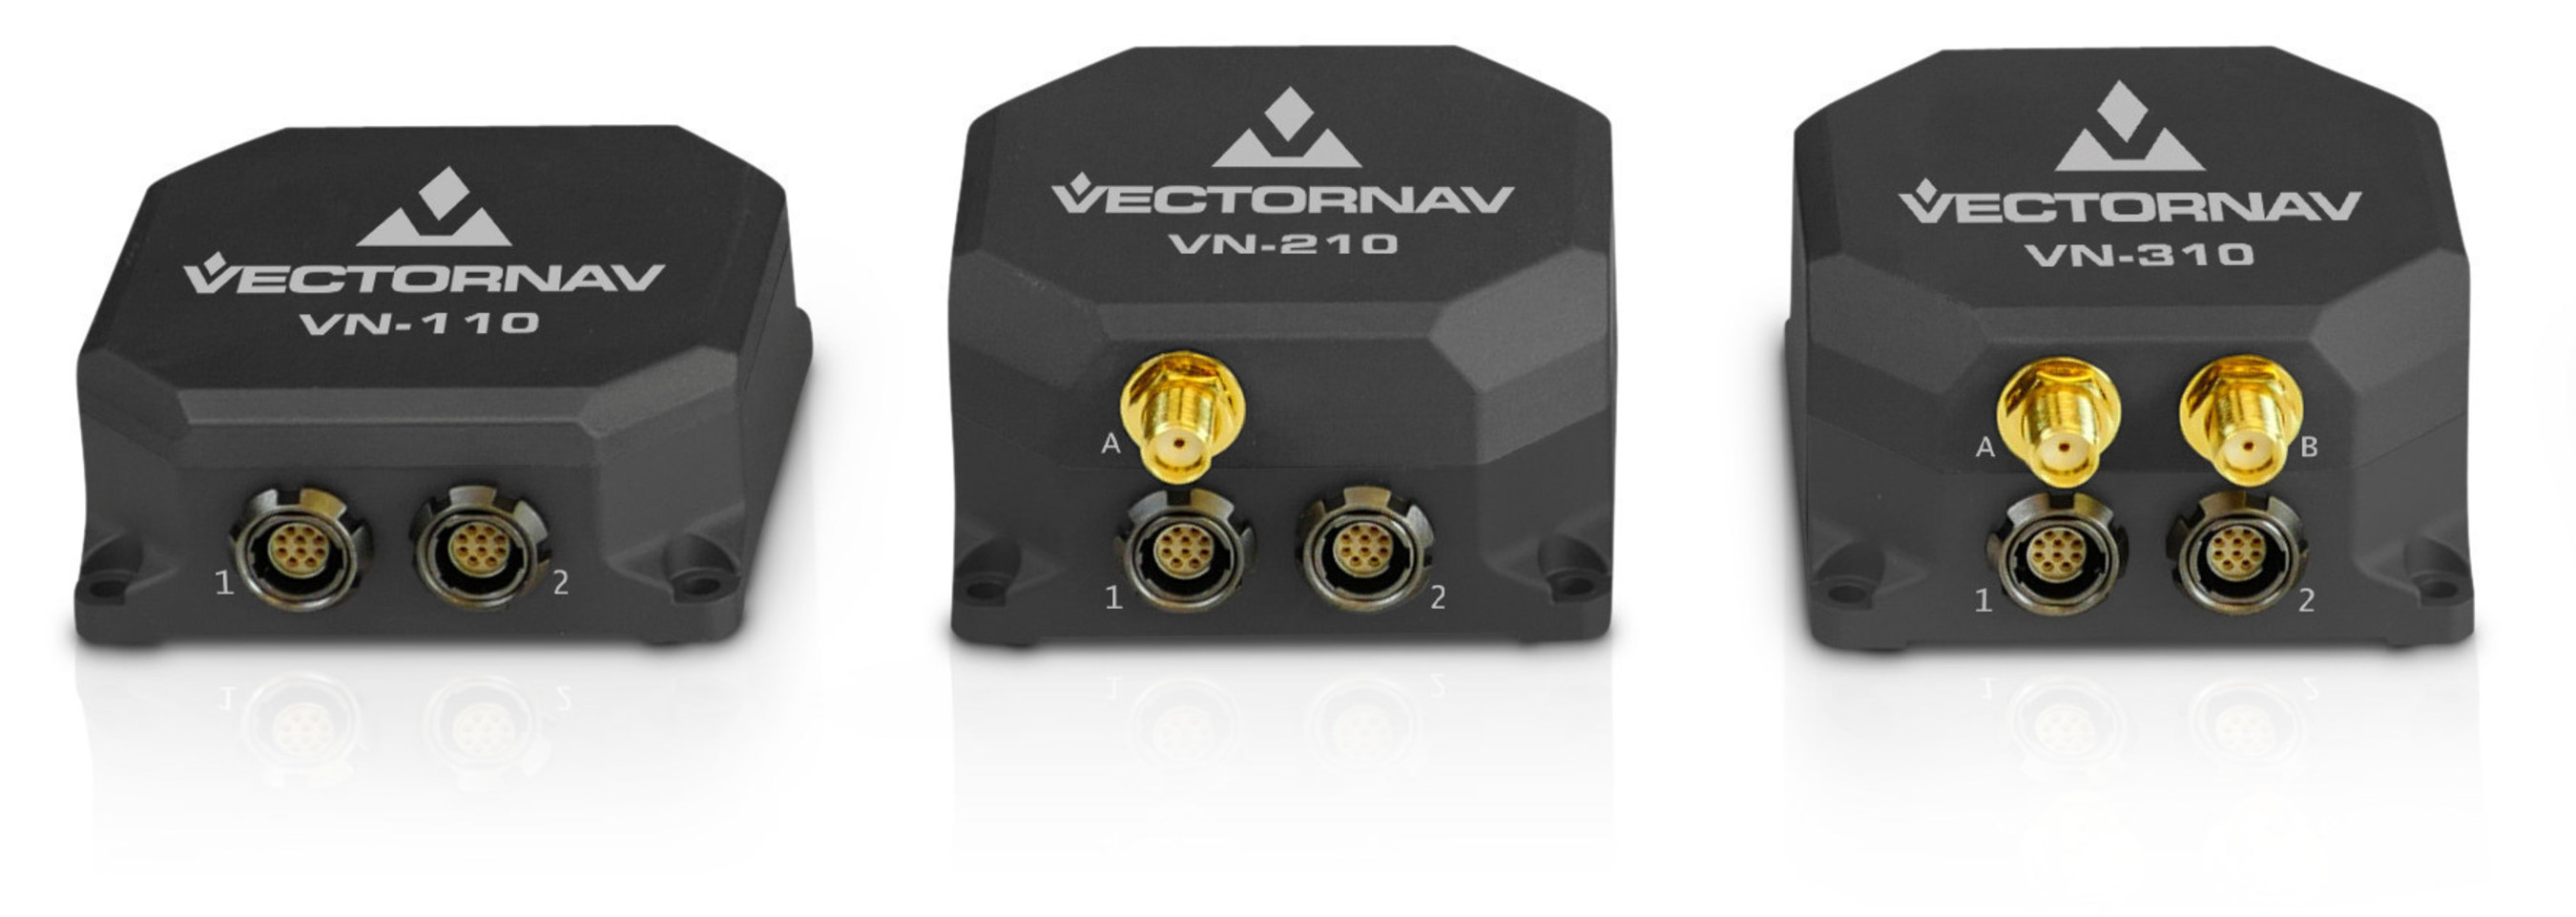 VectorNav Tactical Series VN-110 IMU/AHRS, VN-210 GPS/INS and VN-310 Dual GPS/INS